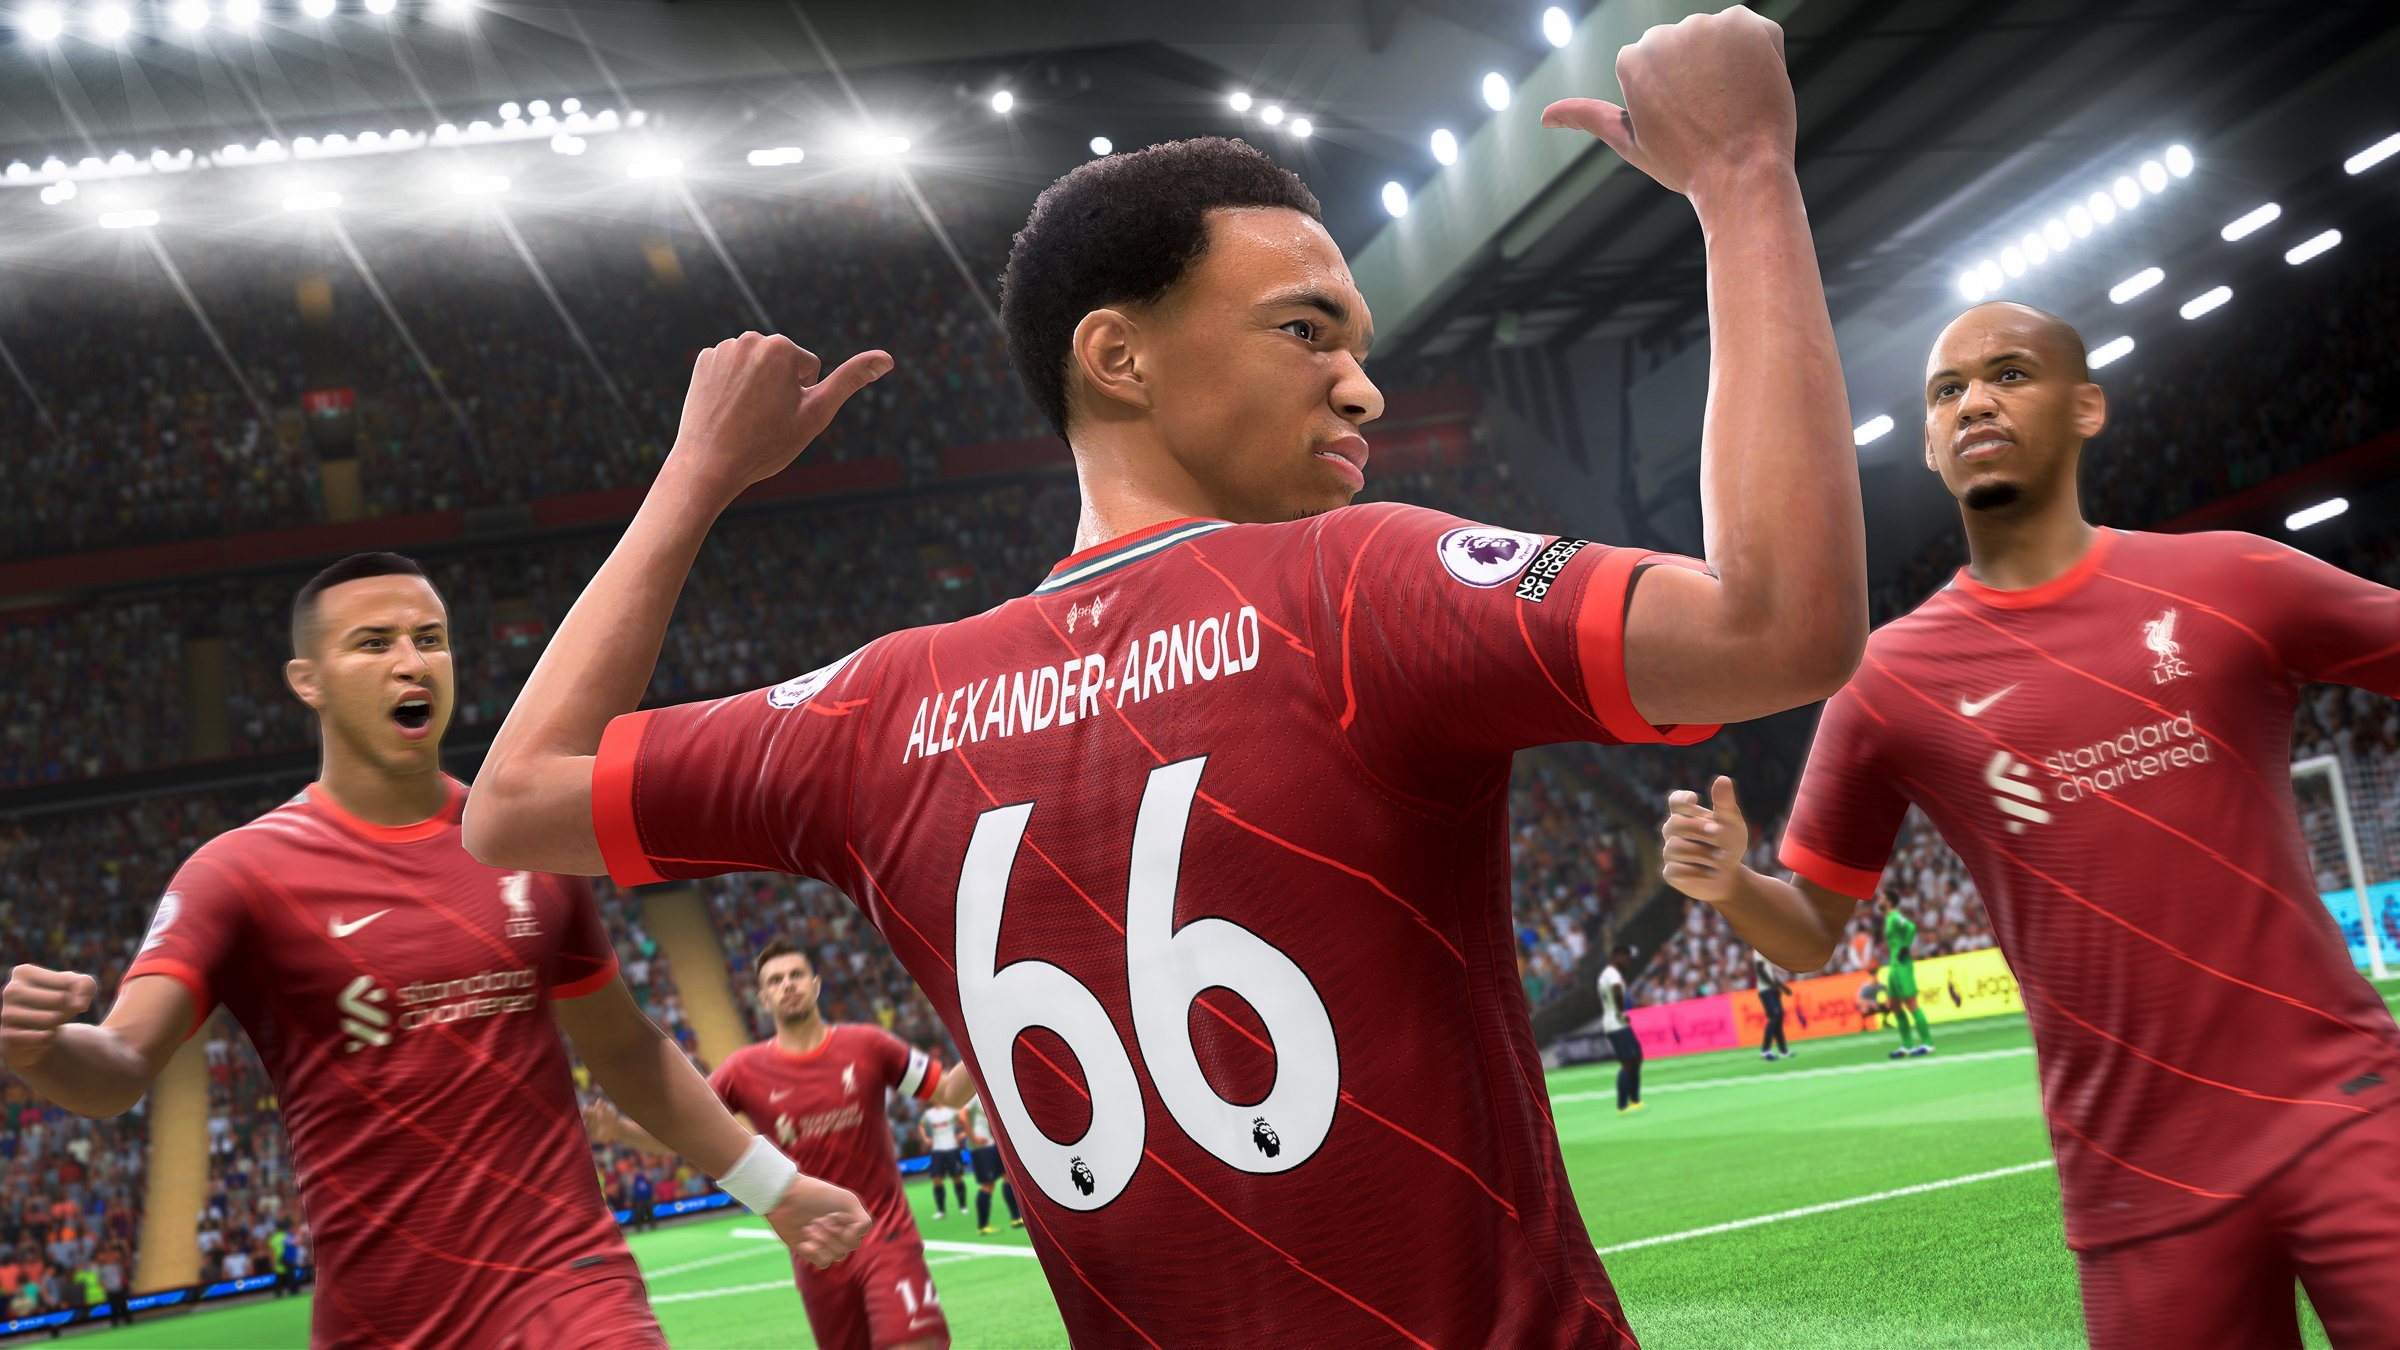 FIFA 22: Gameplay Reveal Today - Watch the trailer premiere here